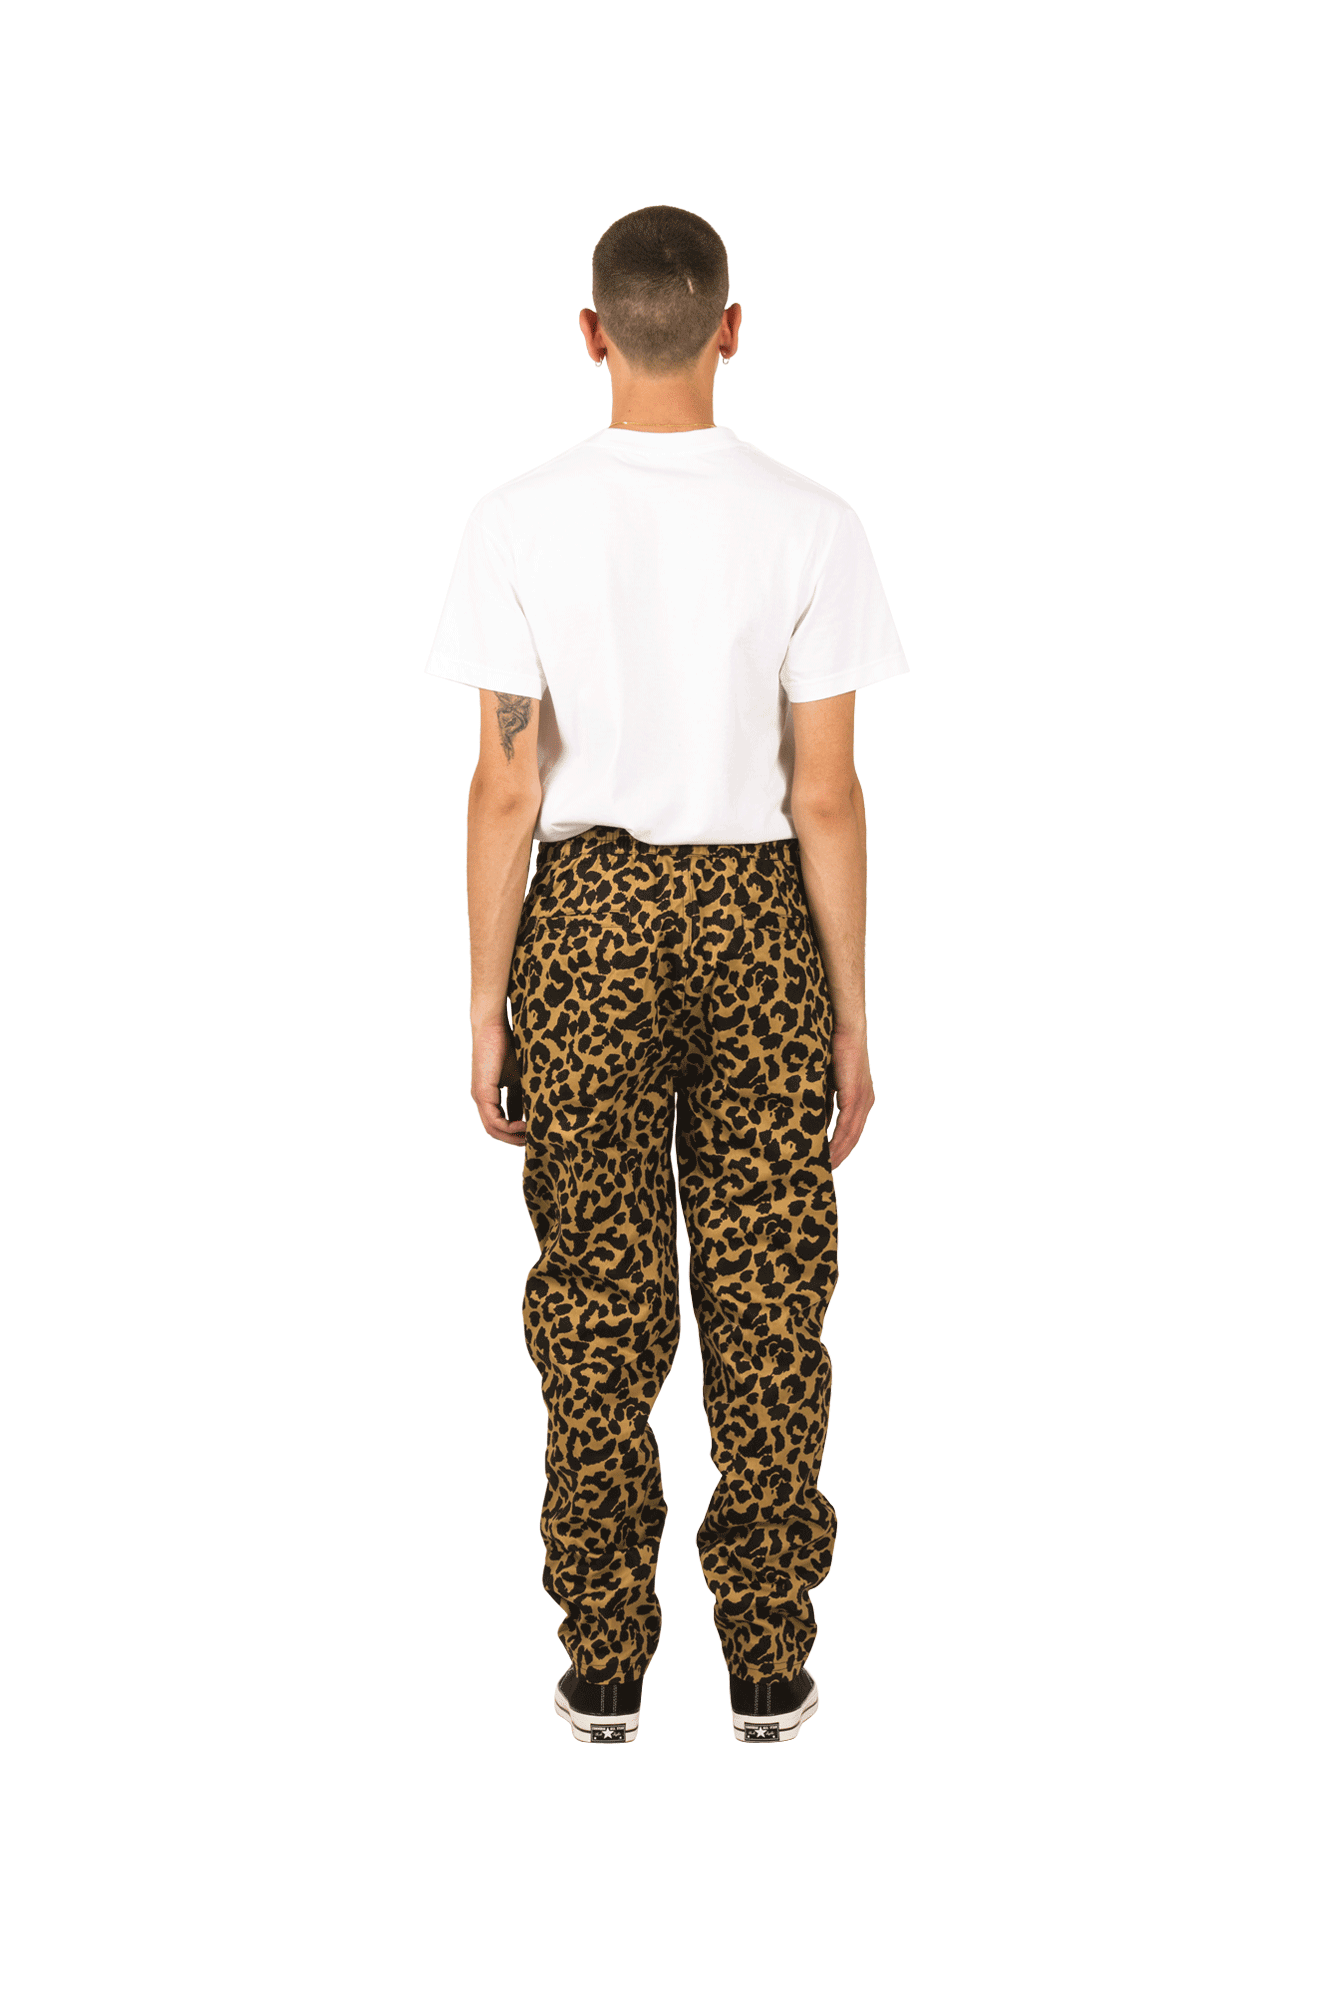 Pleasures Trousers Leopard Beach Pant Brown P19S104010#010#TAN#S - One Block Down